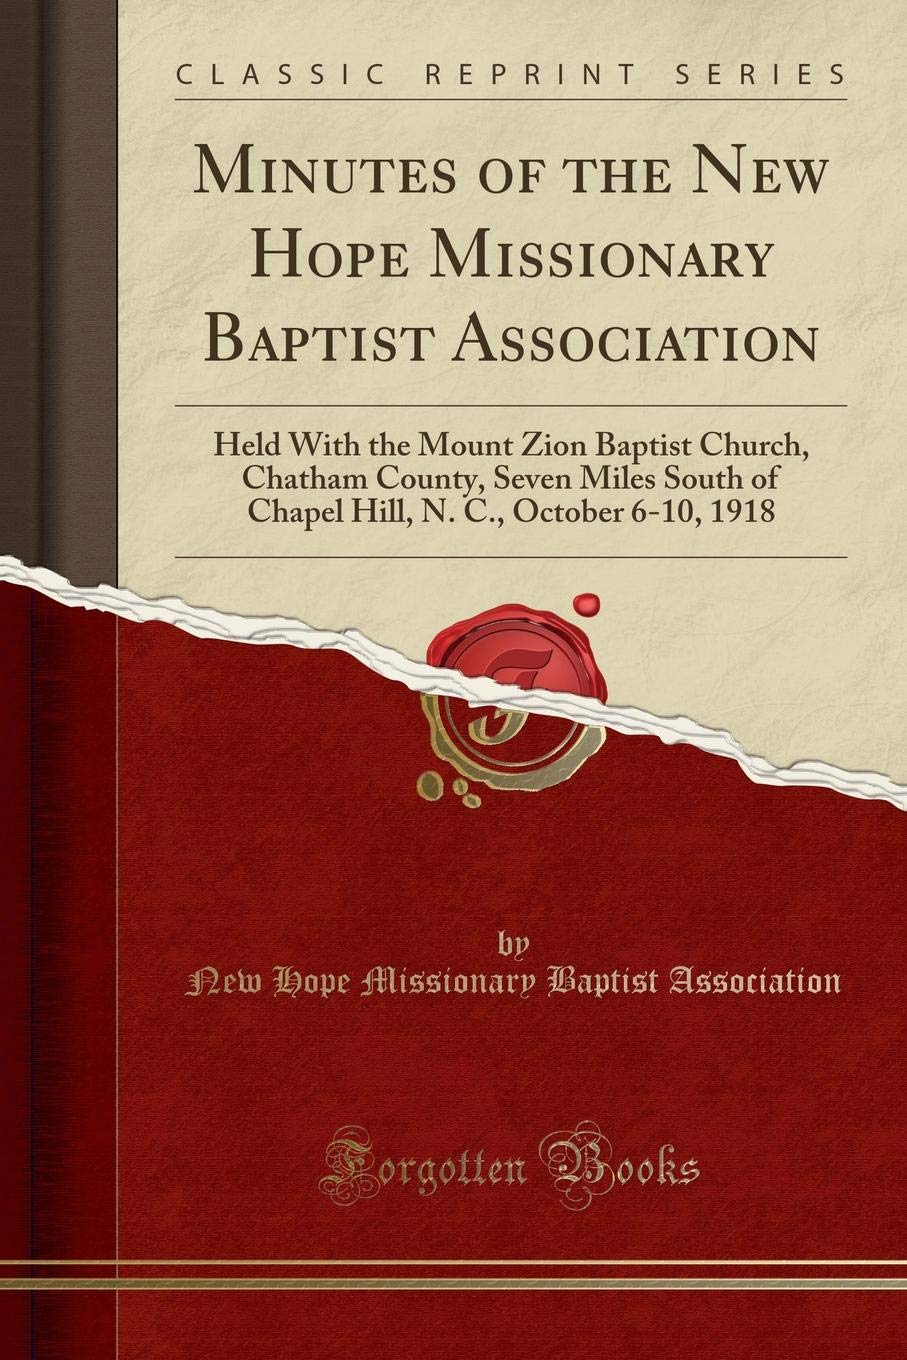 5496cf74867 ... New Hope Missionary Baptist Association: Held With the Mount Zion  Baptist Church, Chatham County, Seven Miles South of Chapel Hill, N. C., October  6-10, ...